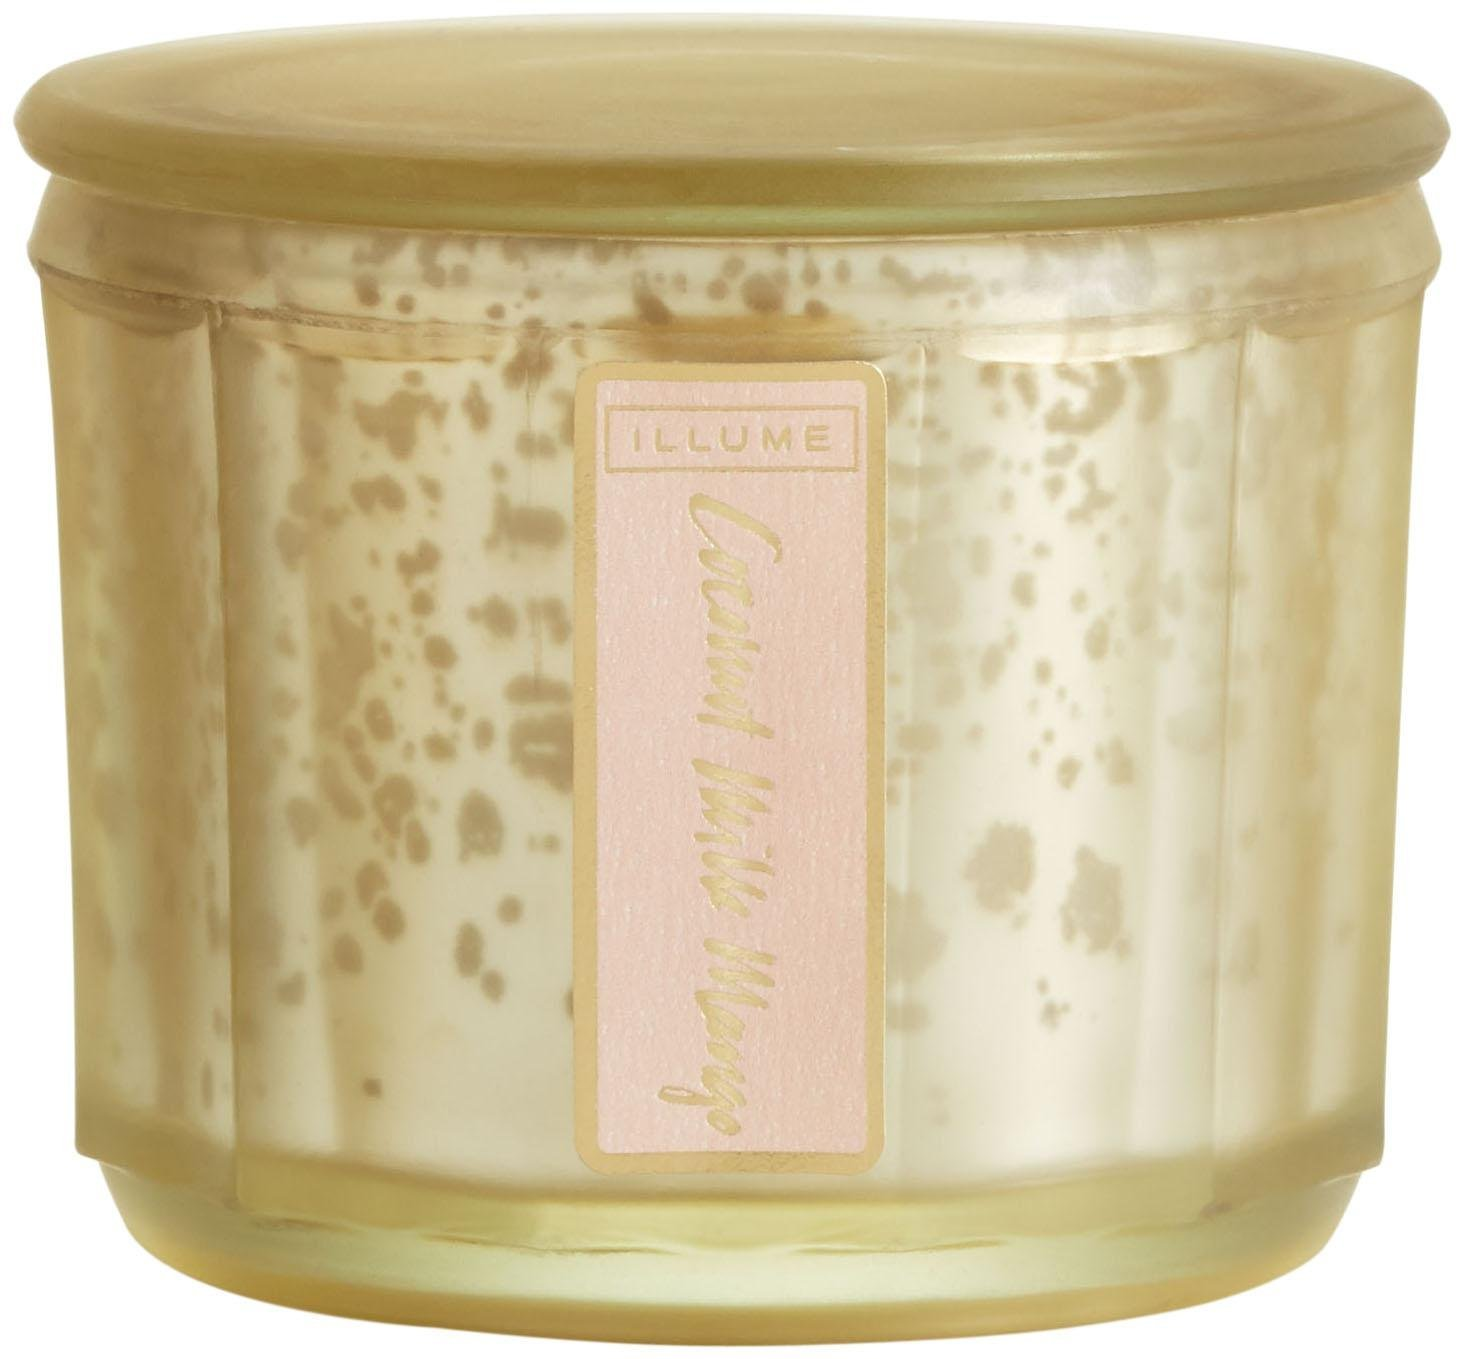 Illume Lustre Jar Candle - Coconut Milk Mango